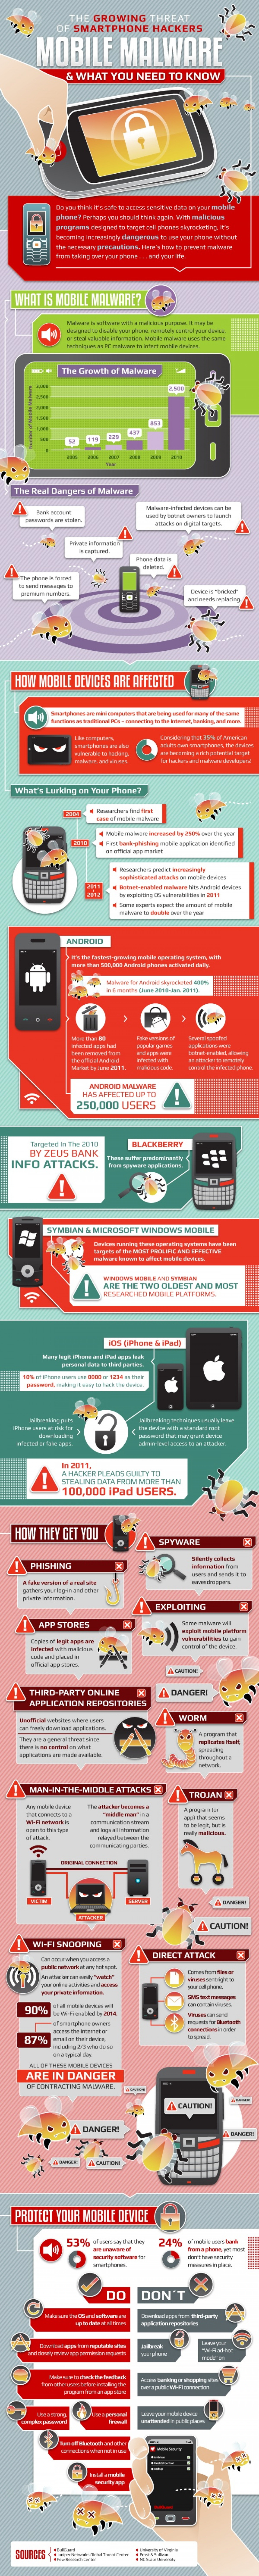 Android Malware Infographic